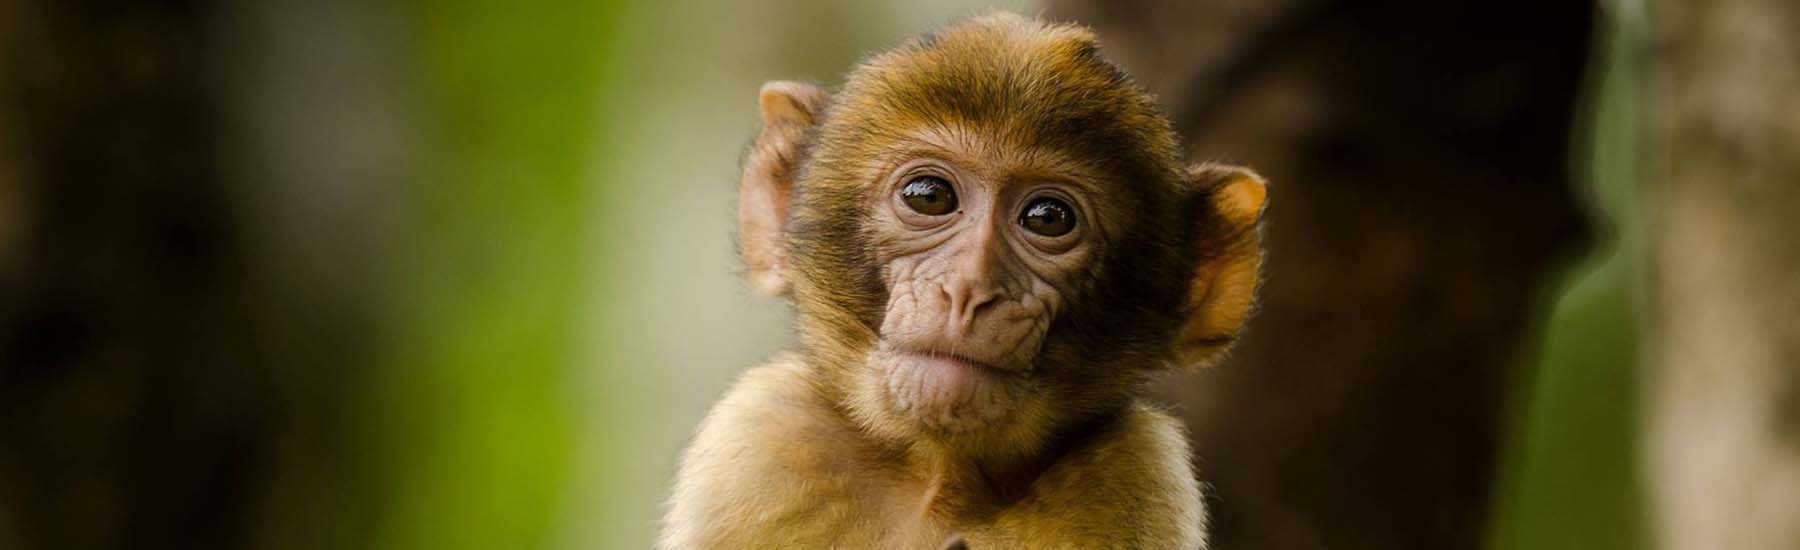 Monkey Forest Closed for Foreseeable